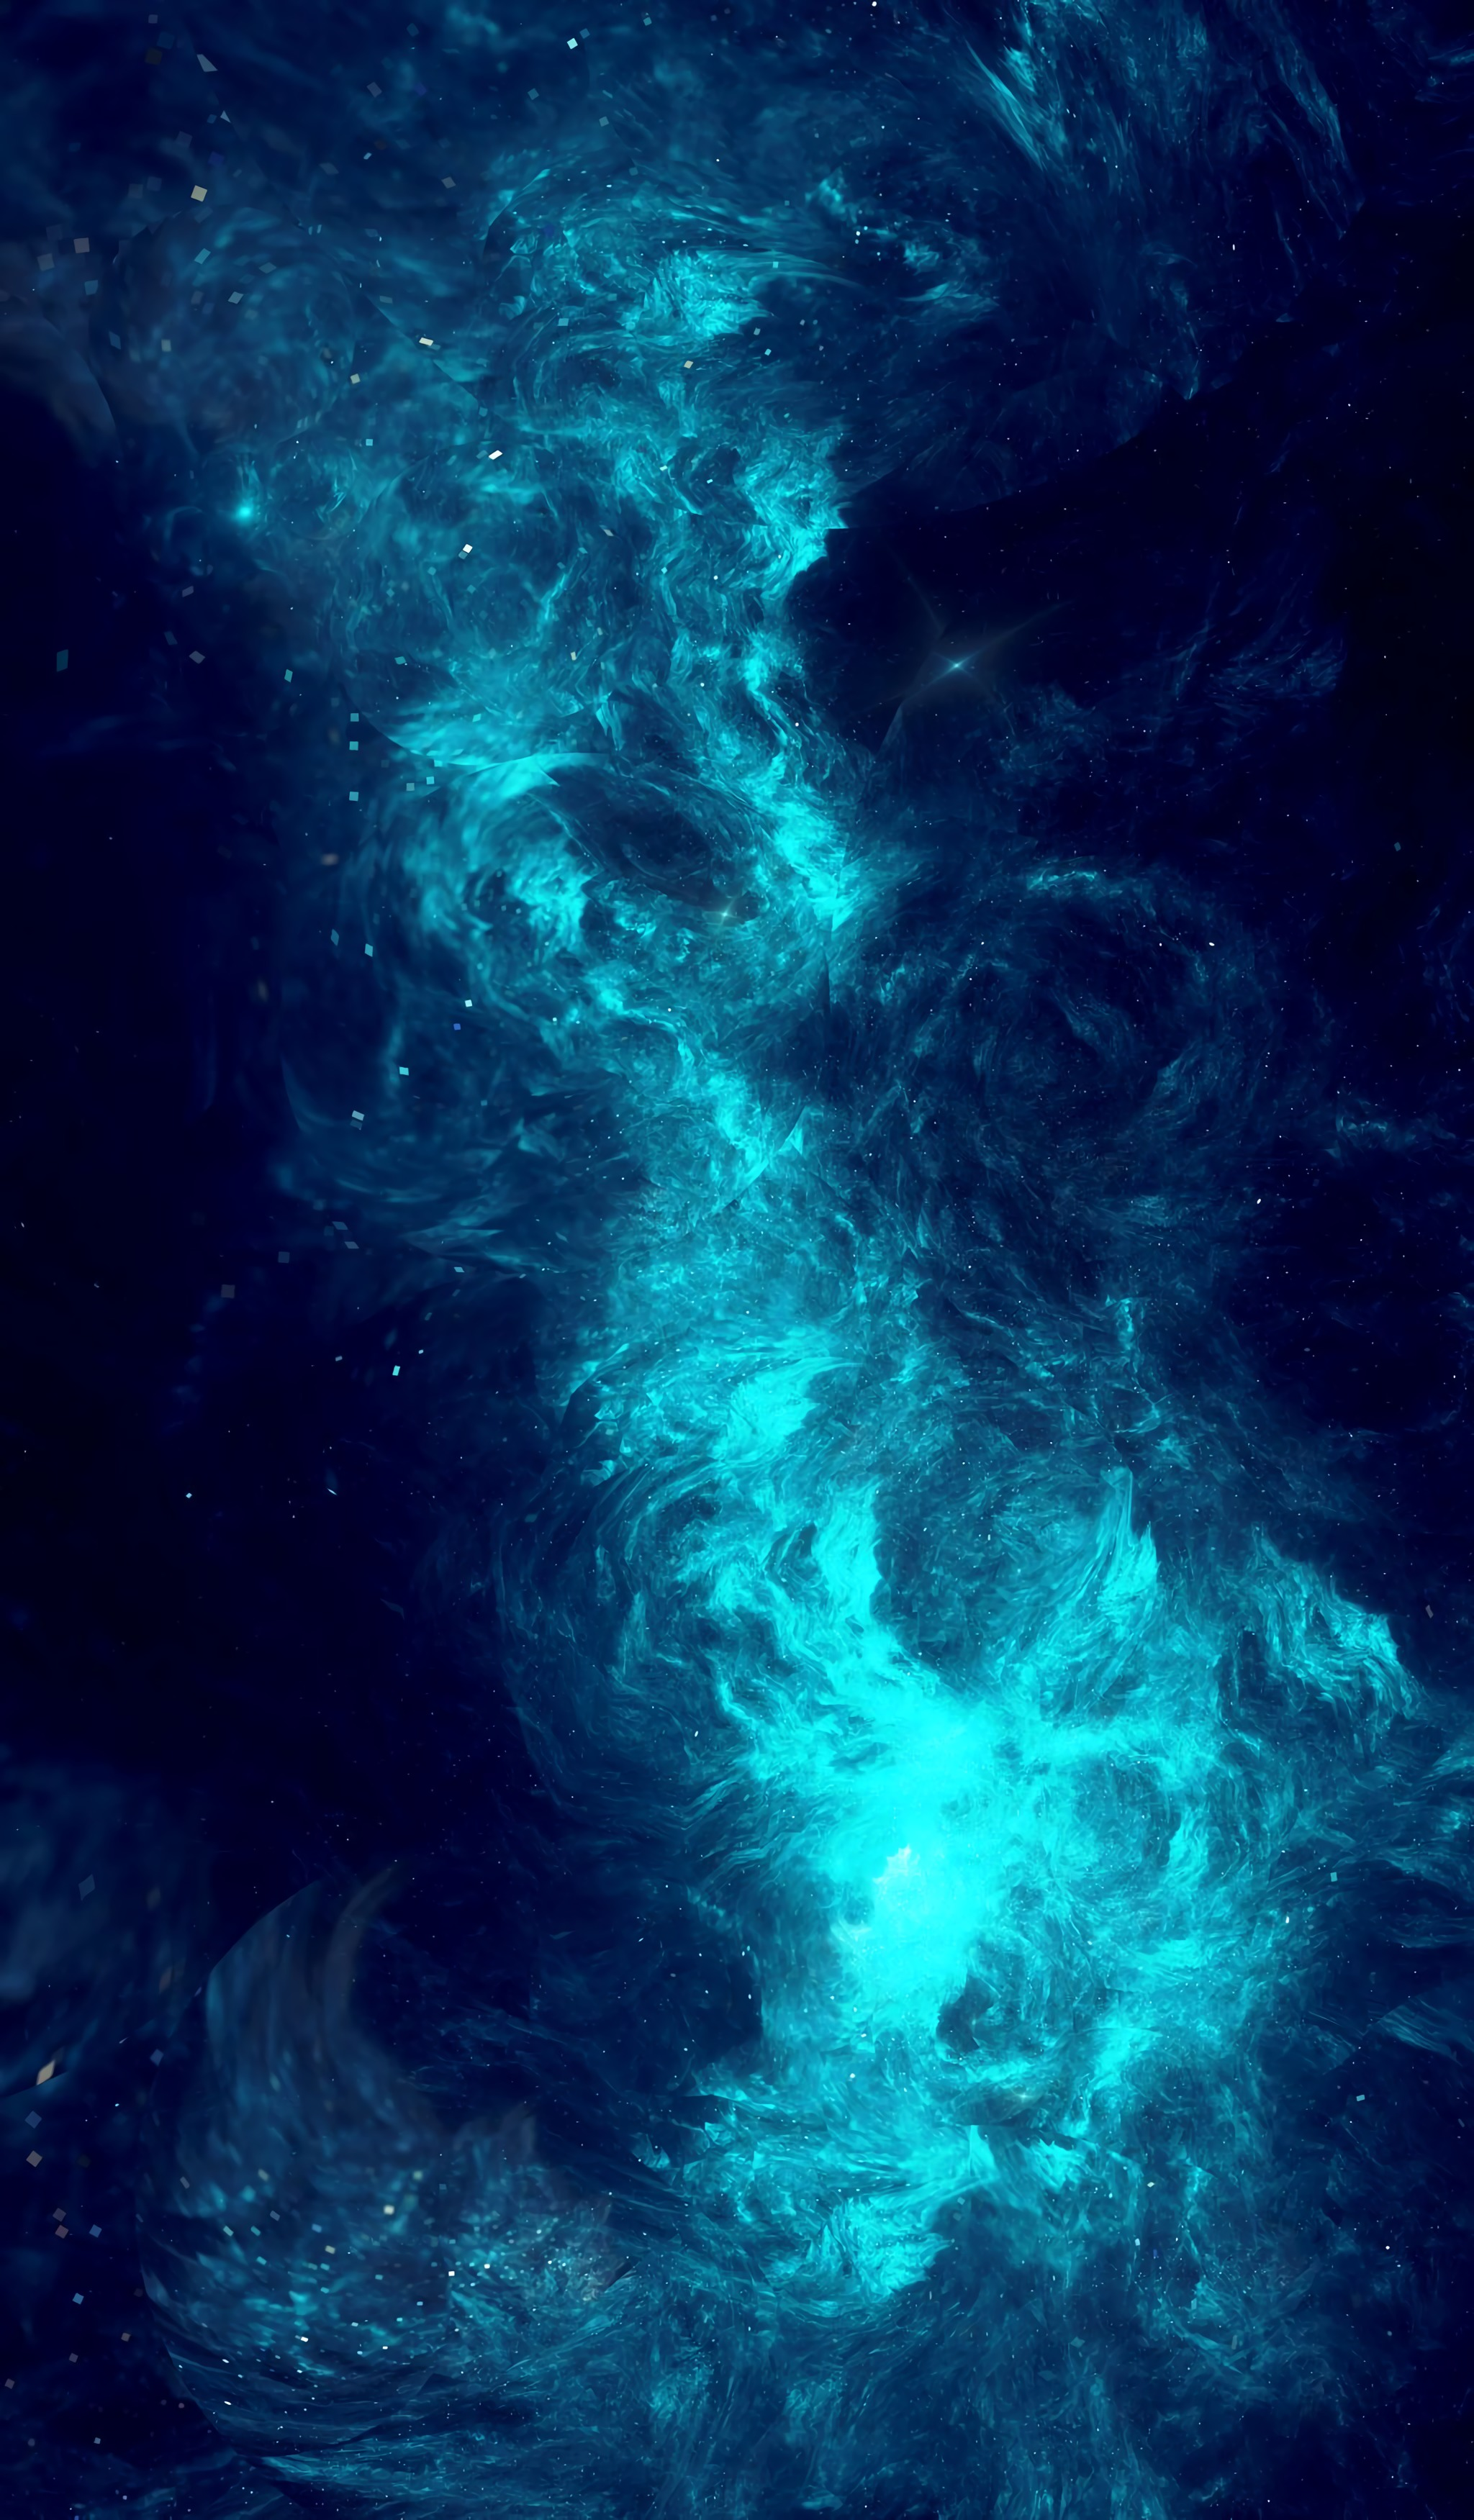 96447 download wallpaper Abstract, Glow, Sparks, Glare, Energy, Fractal screensavers and pictures for free